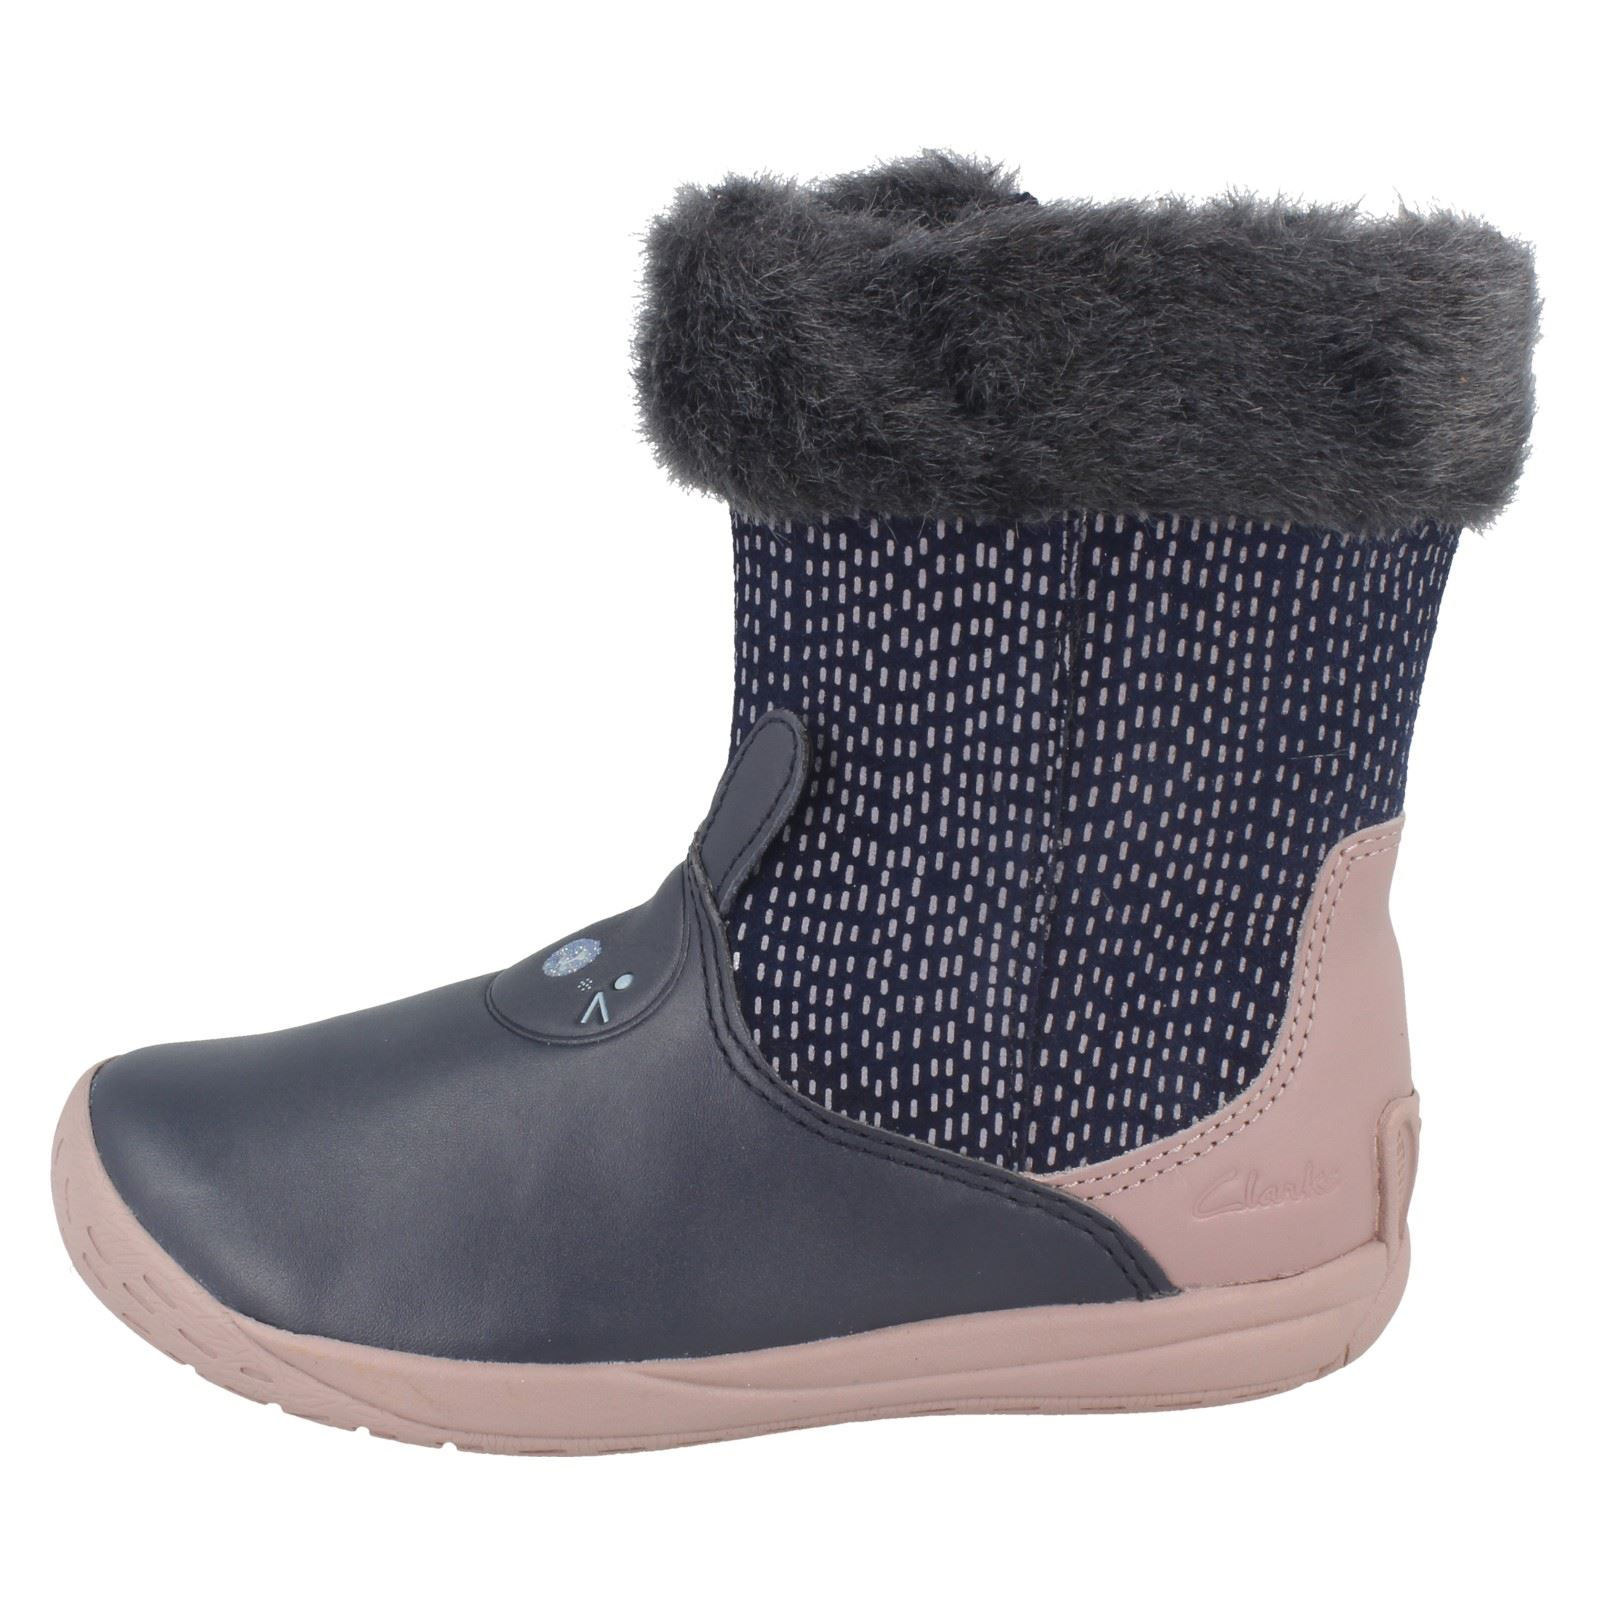 Girls Clarks Boots /'Puppet Time/'